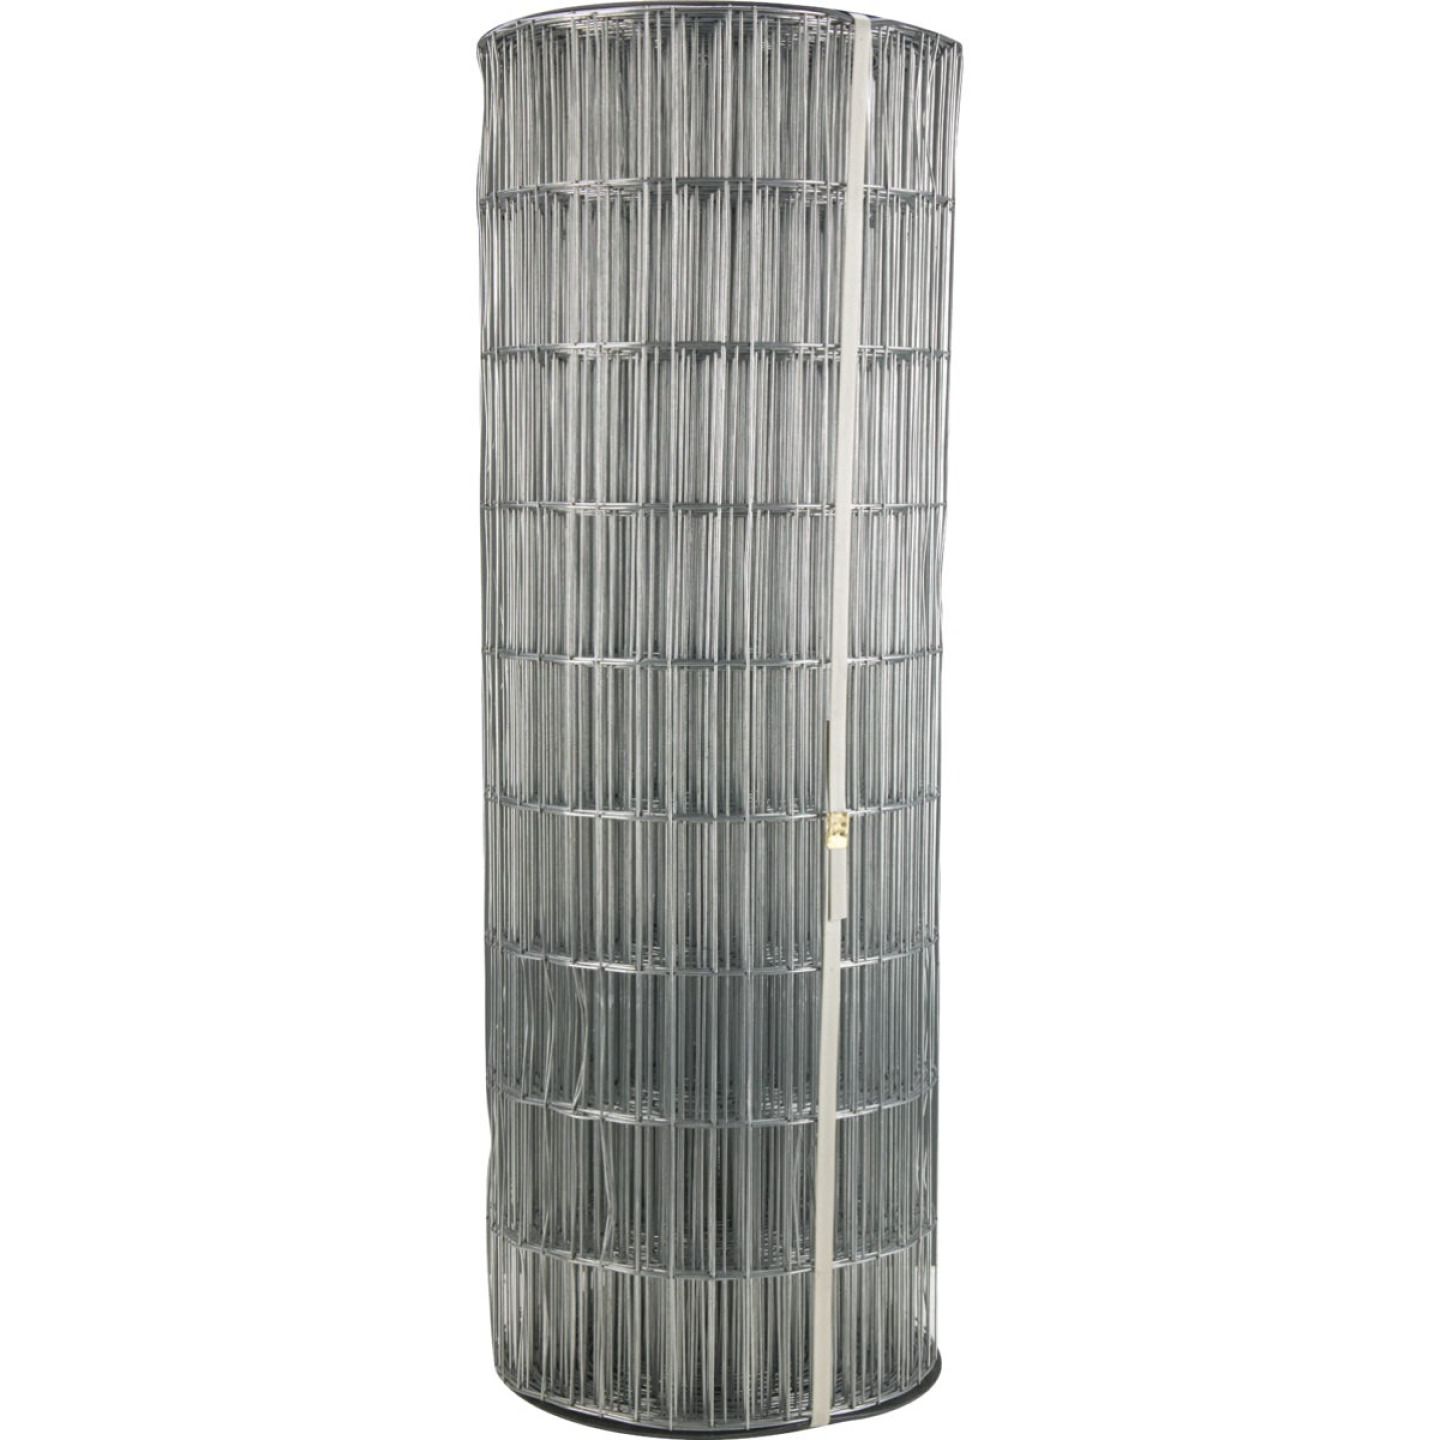 36 In. H. x 100 Ft. L. (2x4) Galvanized Welded Wire Fence Image 1